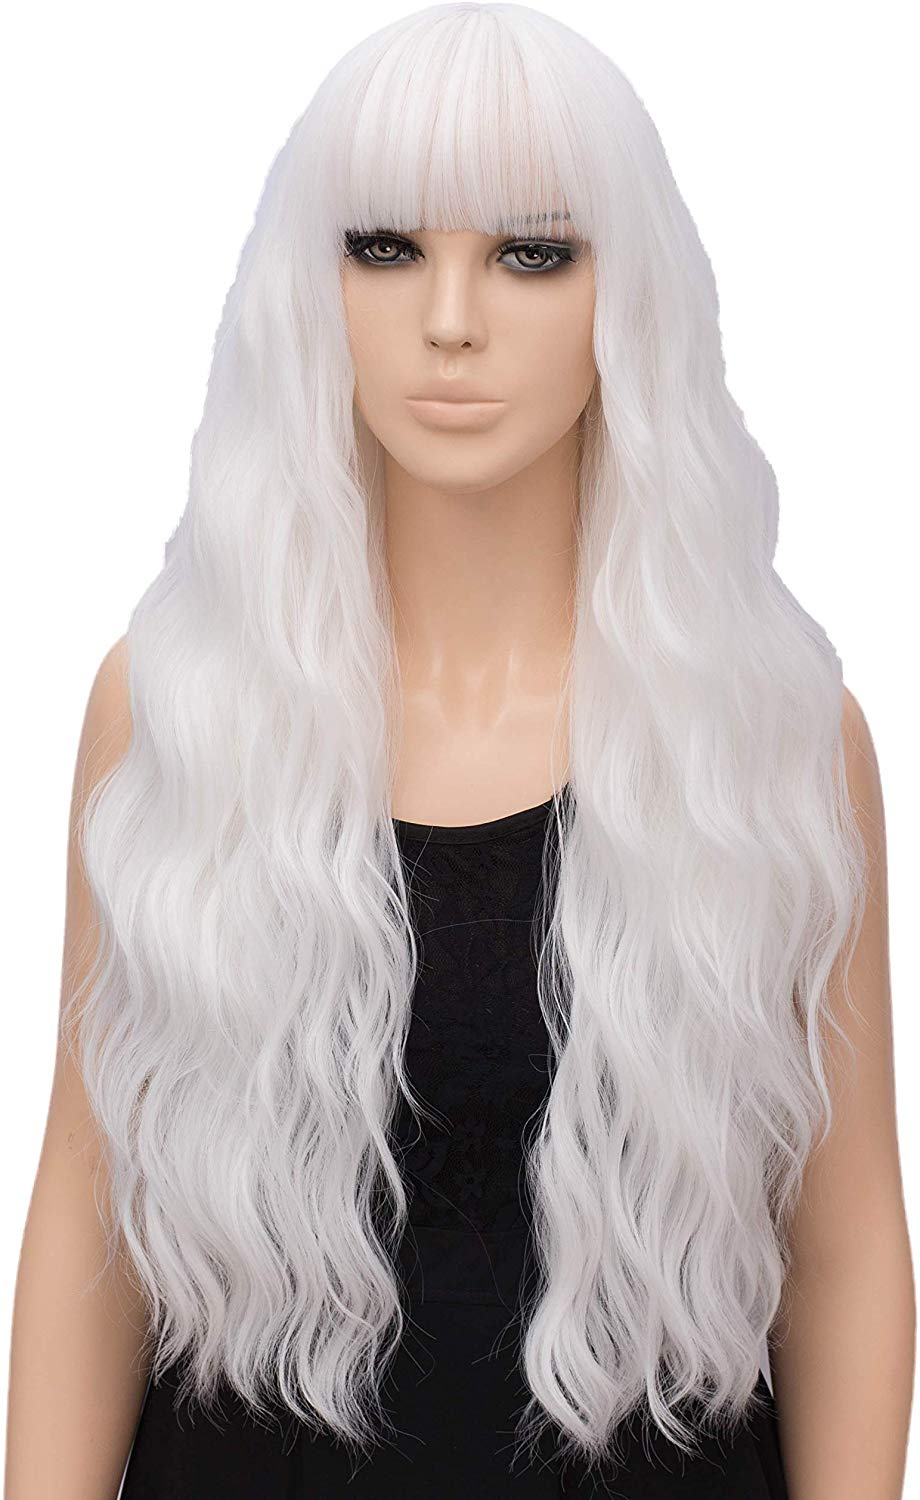 How To Stylish Long Wigs – Top Design Ideas